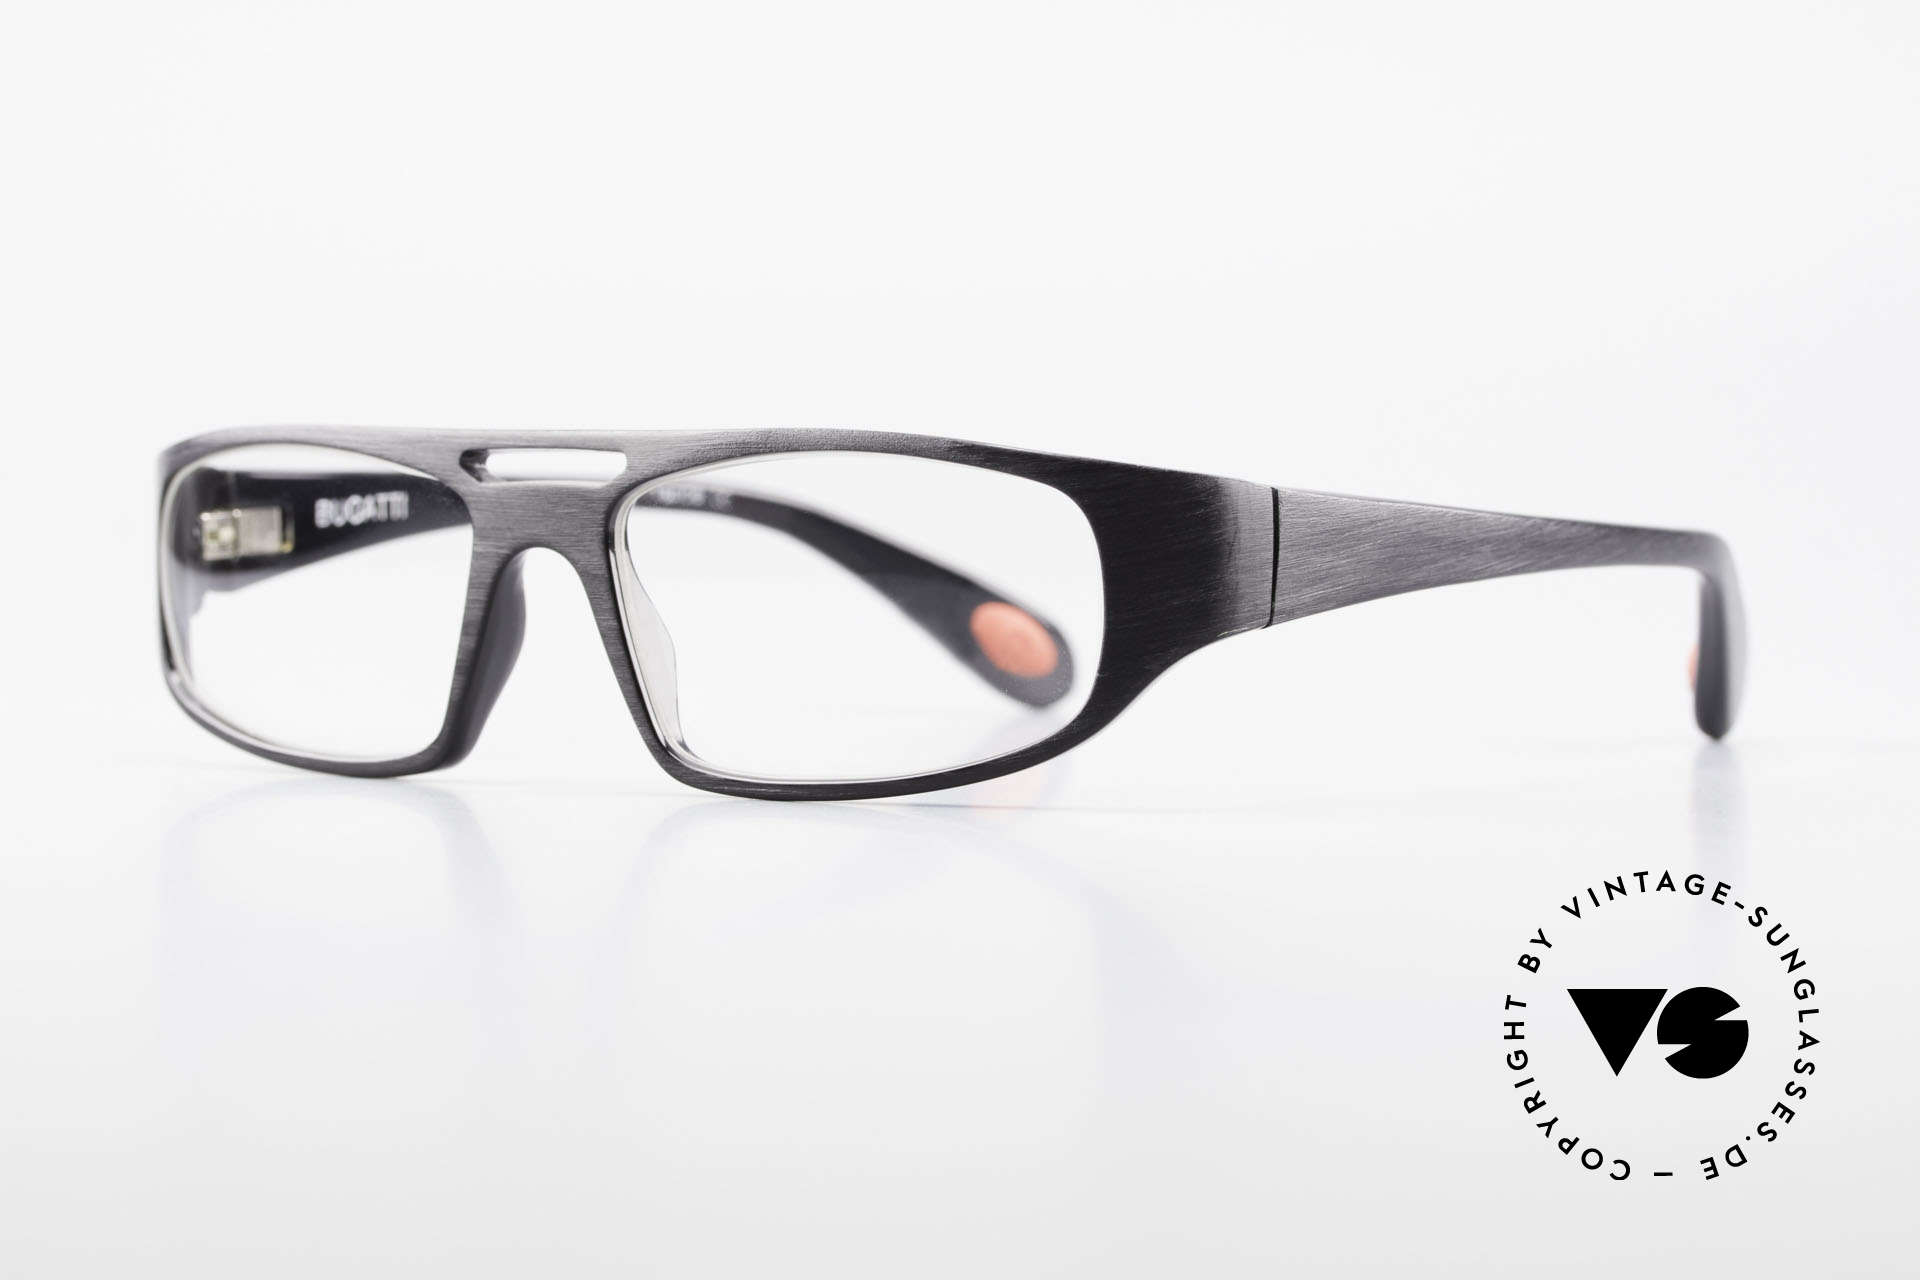 Bugatti 222 Extraordinary Vintage Glasses, 1. class wearing comfort due to spring hinges, Made for Men